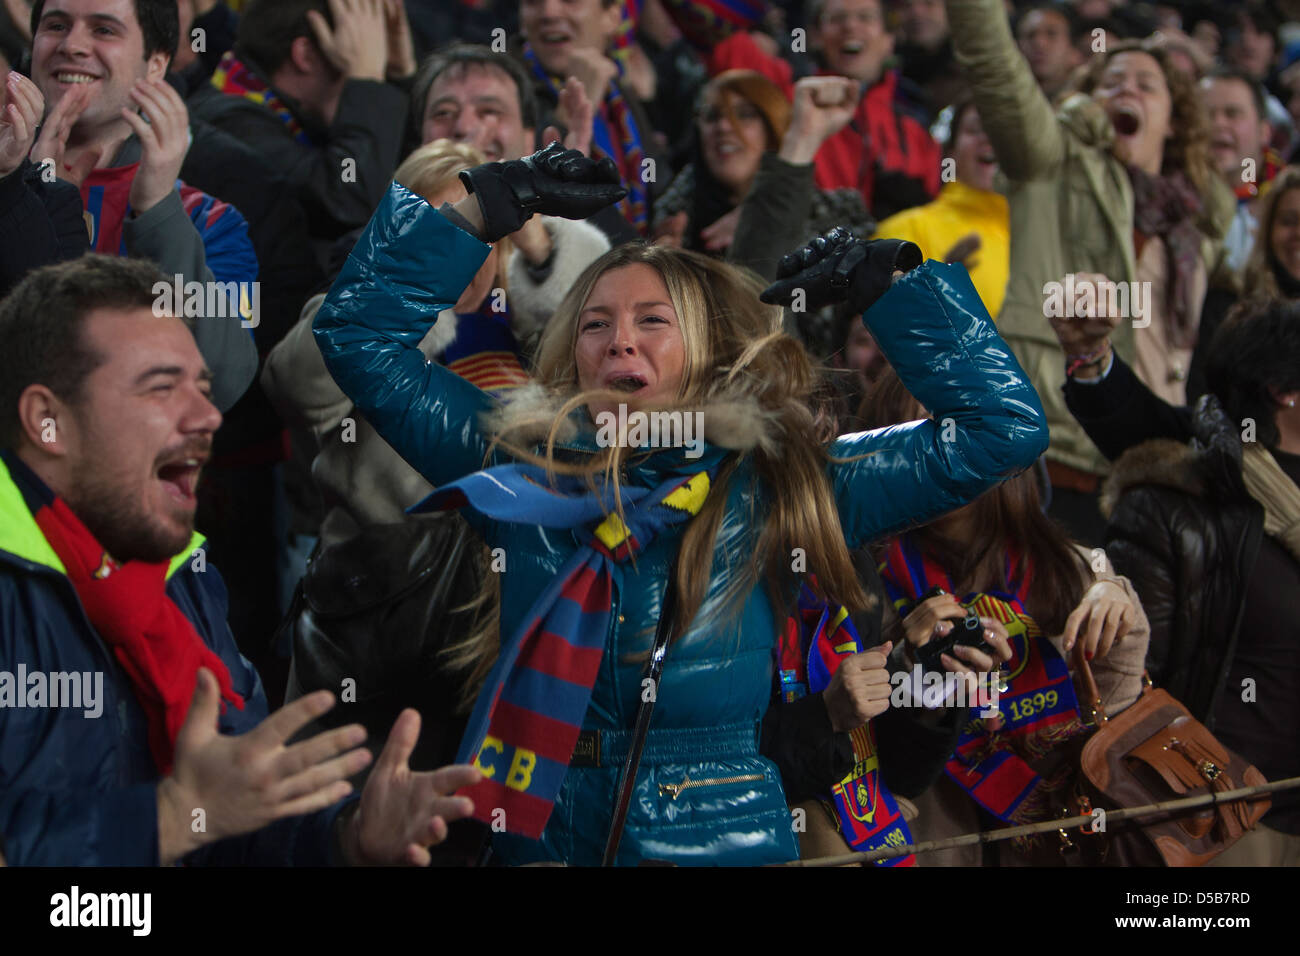 Barcelona, Spain, football fans of FC Barcelona at the Camp Nou stadium - Stock Image